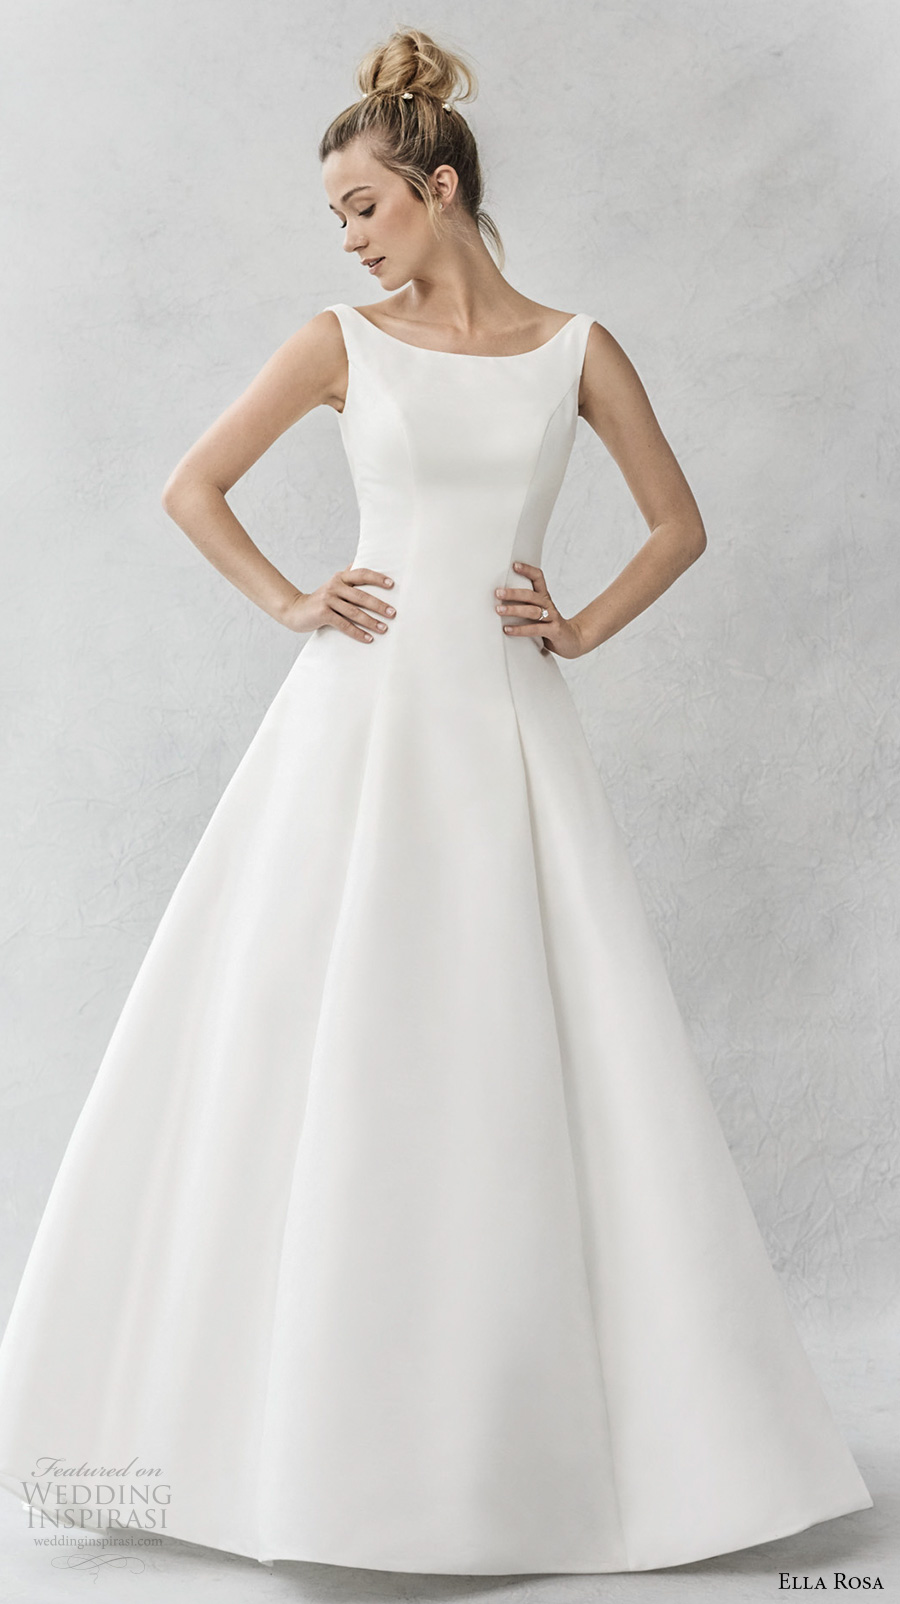 ella rosa spring 2017 bridal sleeveless bateau neck simple clean a  line wedding dress open ultra low back sweep train (375) mv